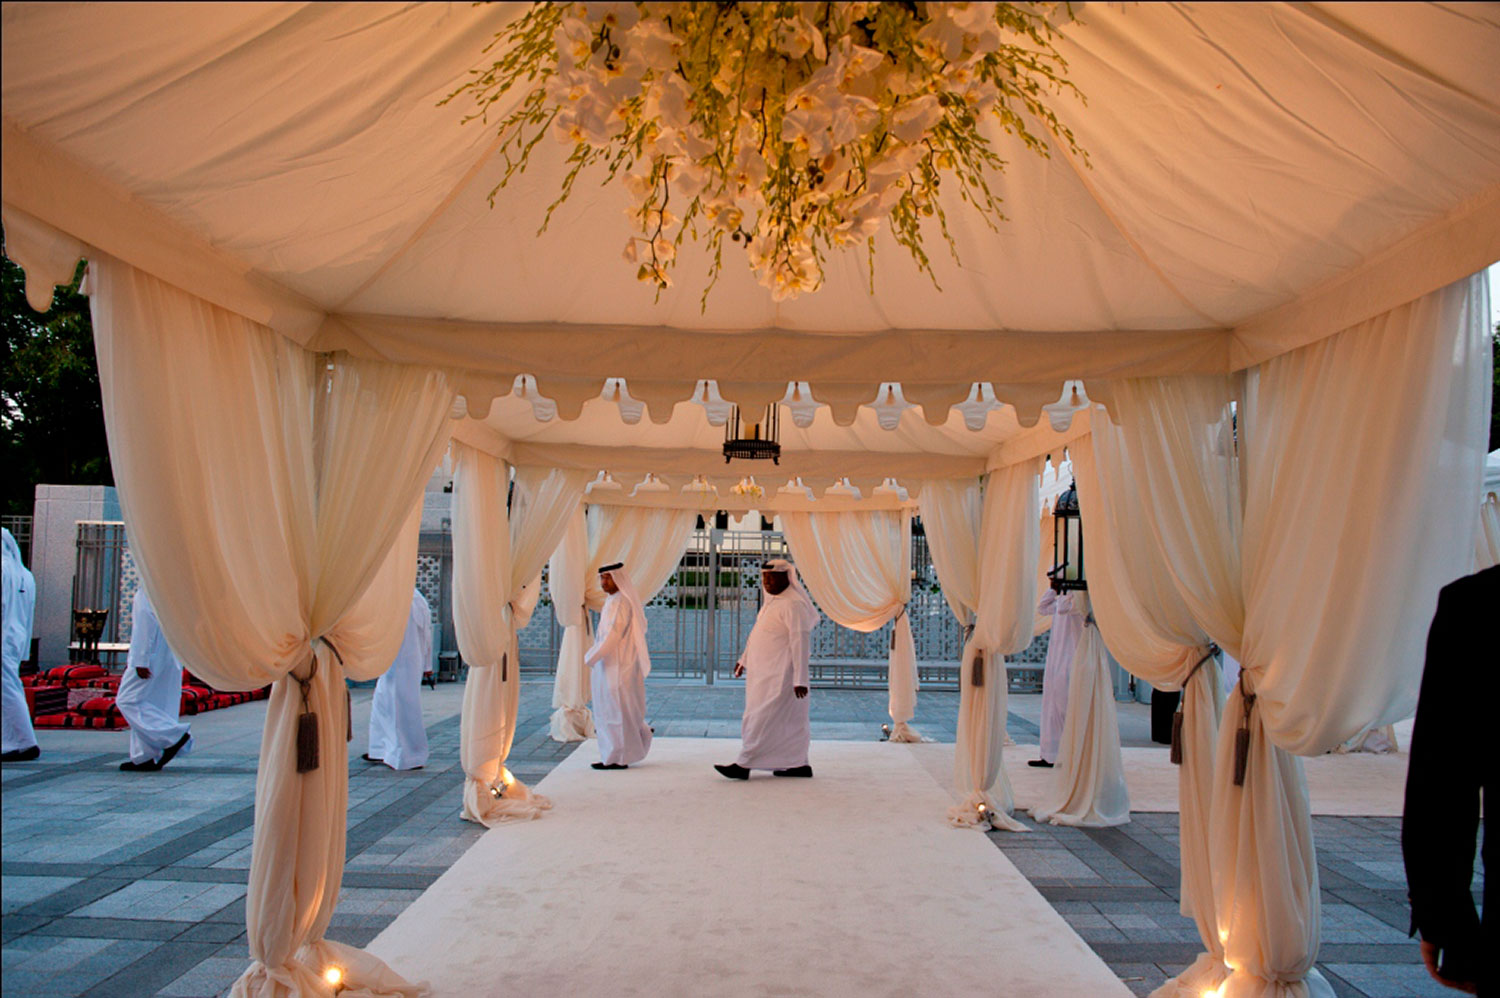 raj-tents-destination-events-uae-ambasadors-ball.jpg